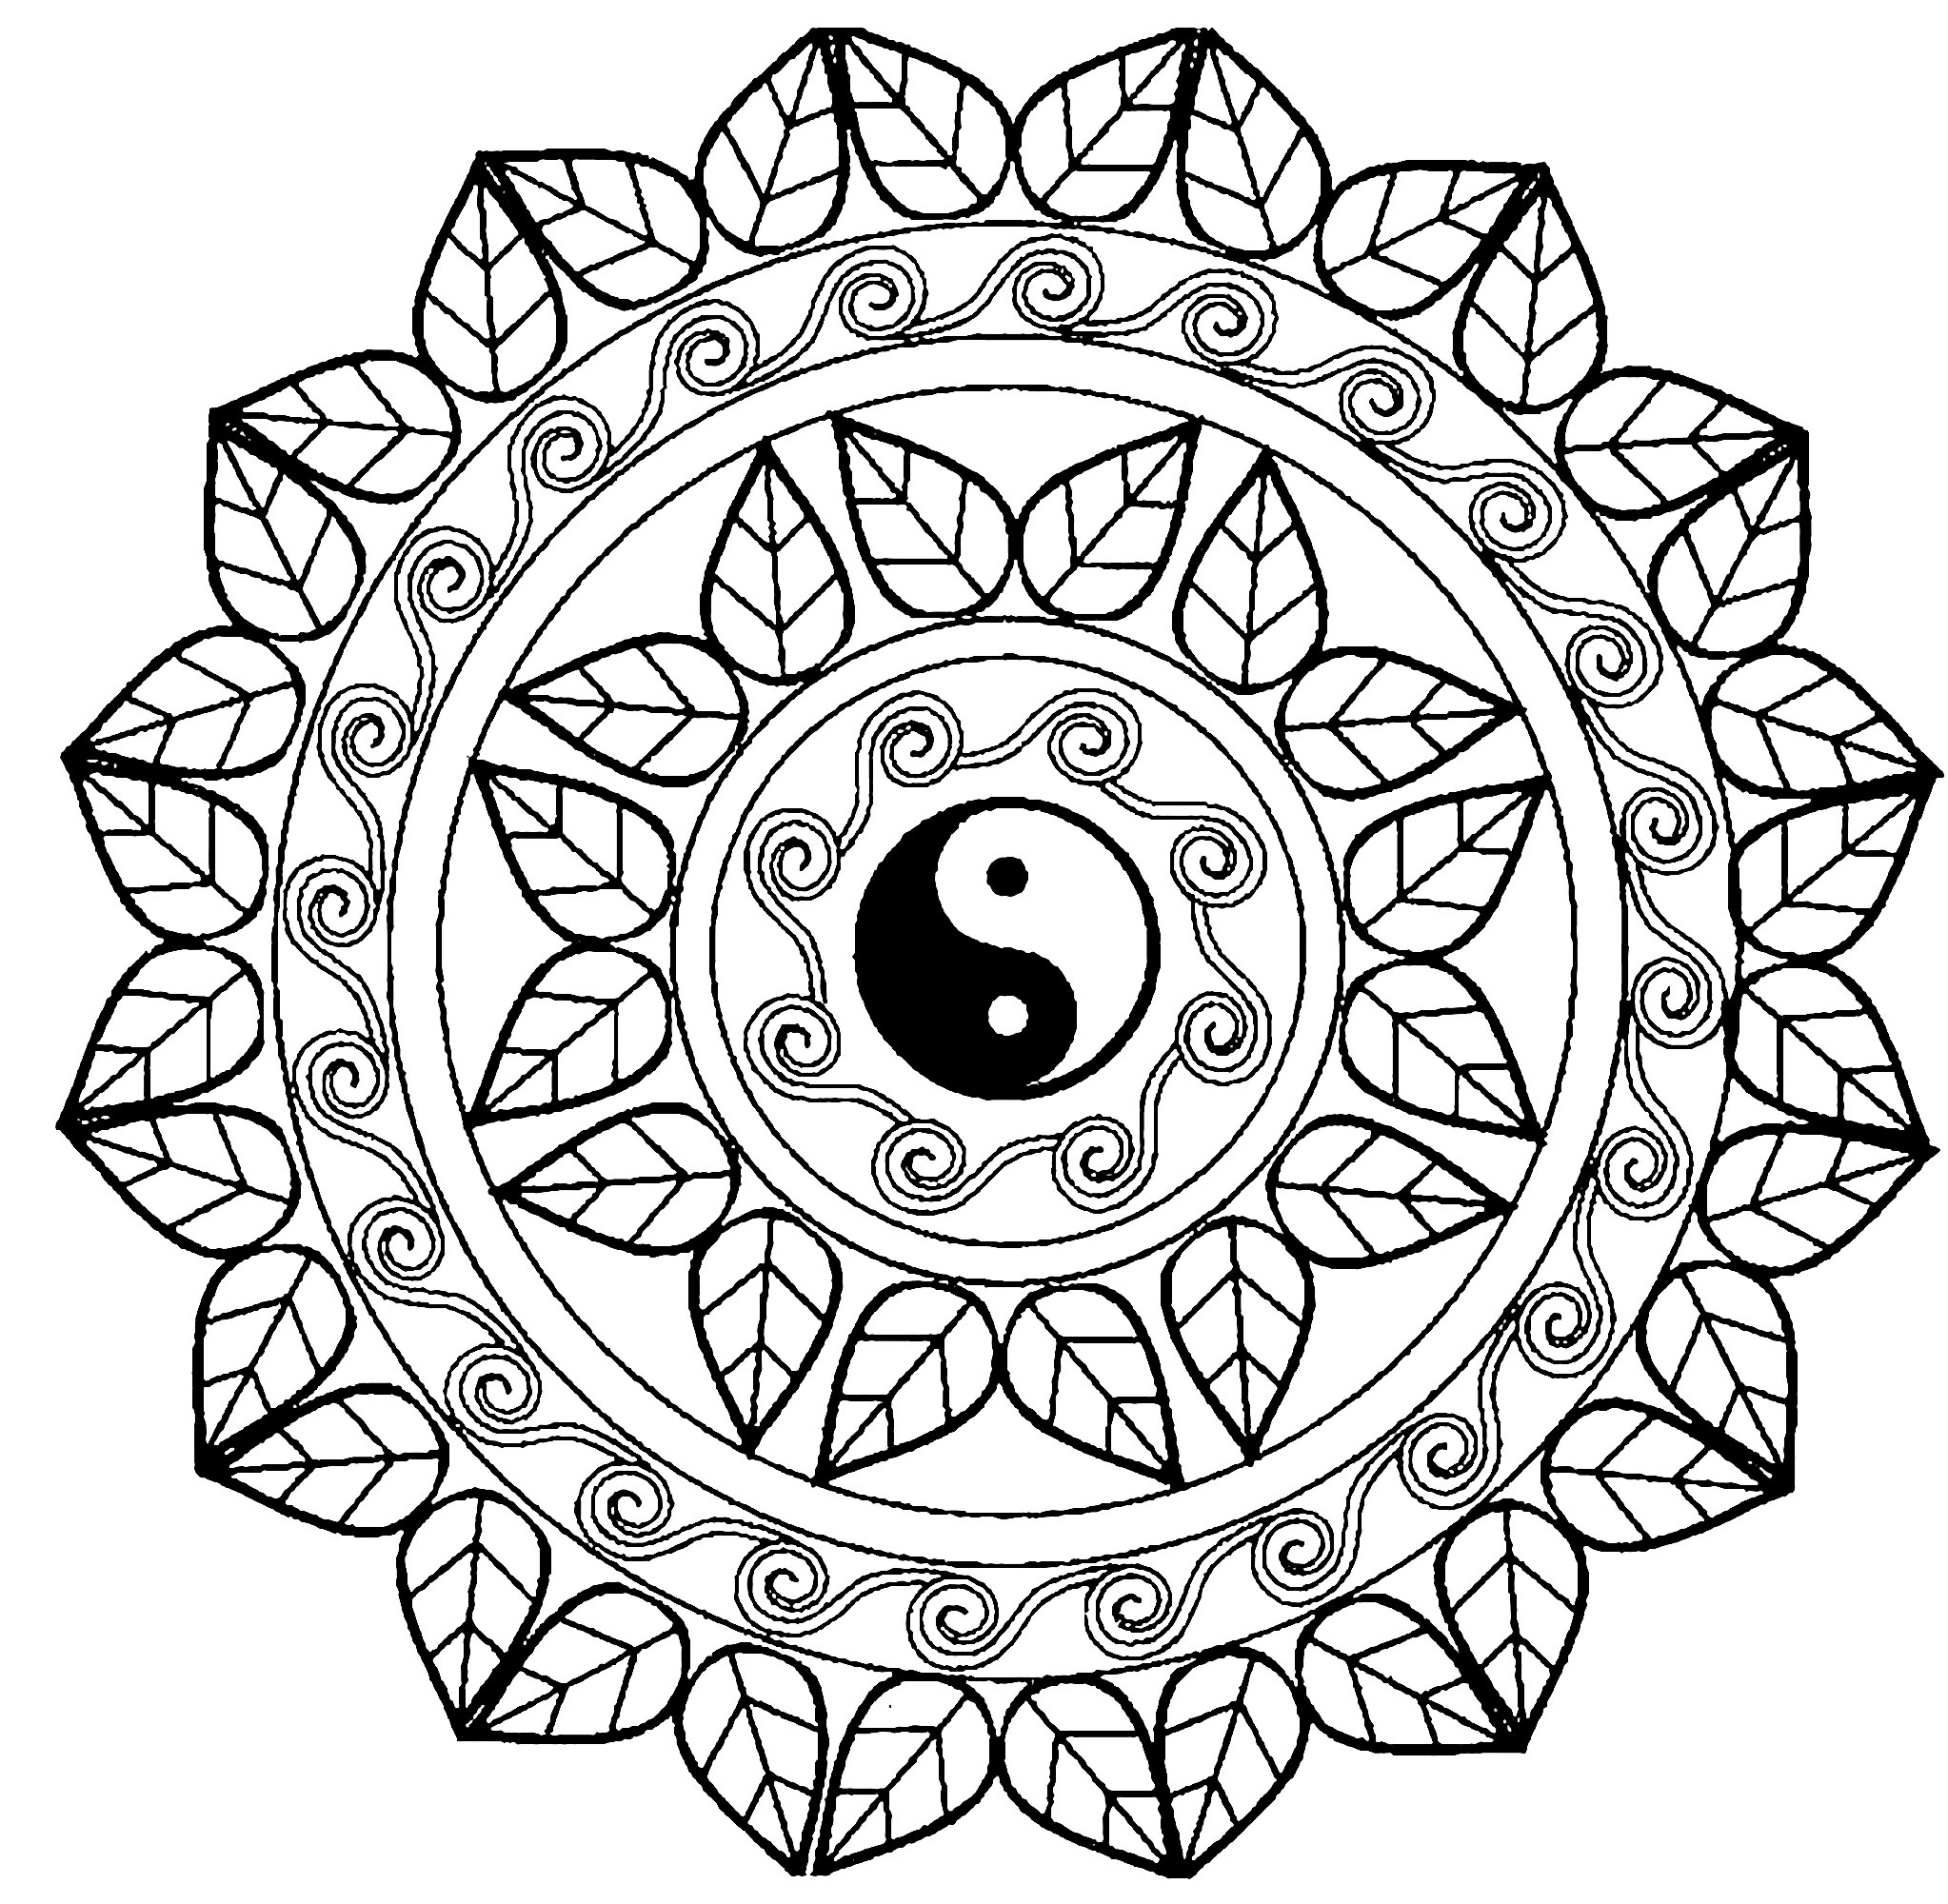 Mandala Coloring Pages For Adults Beauteous Mandala Yin Yang  Mandalas  Coloring Pages For Adults  Justcolor Design Ideas